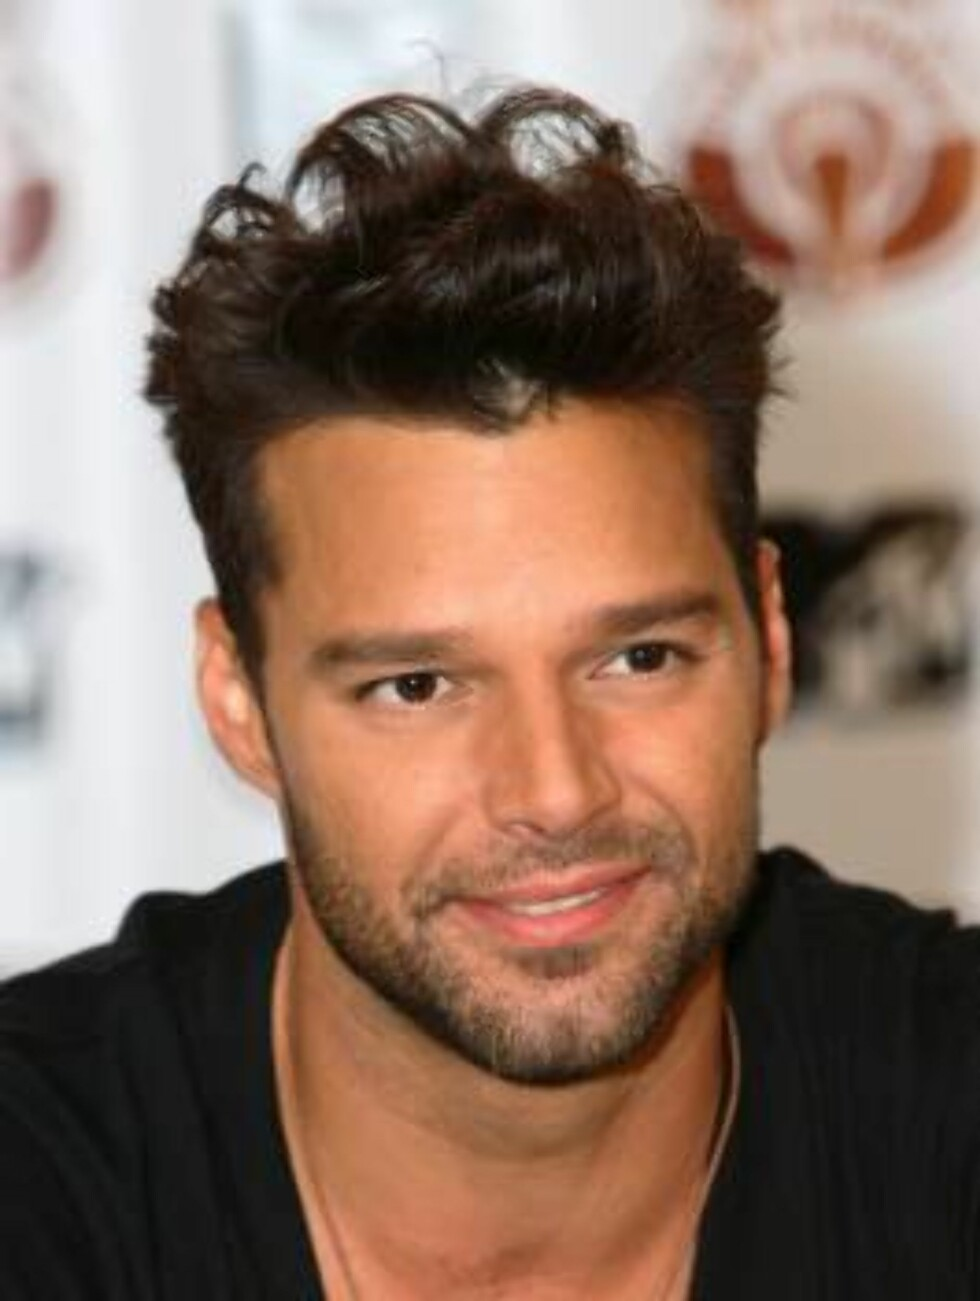 This image is not included in any subscription deal. Use of this image will incur a charge.  CORAL GABLES, FL - AUGUST 17:  Latin musician Ricky Martin appears at a press conference following his MTV Unplugged performance at the Bank United Center at the Foto: All Over Press